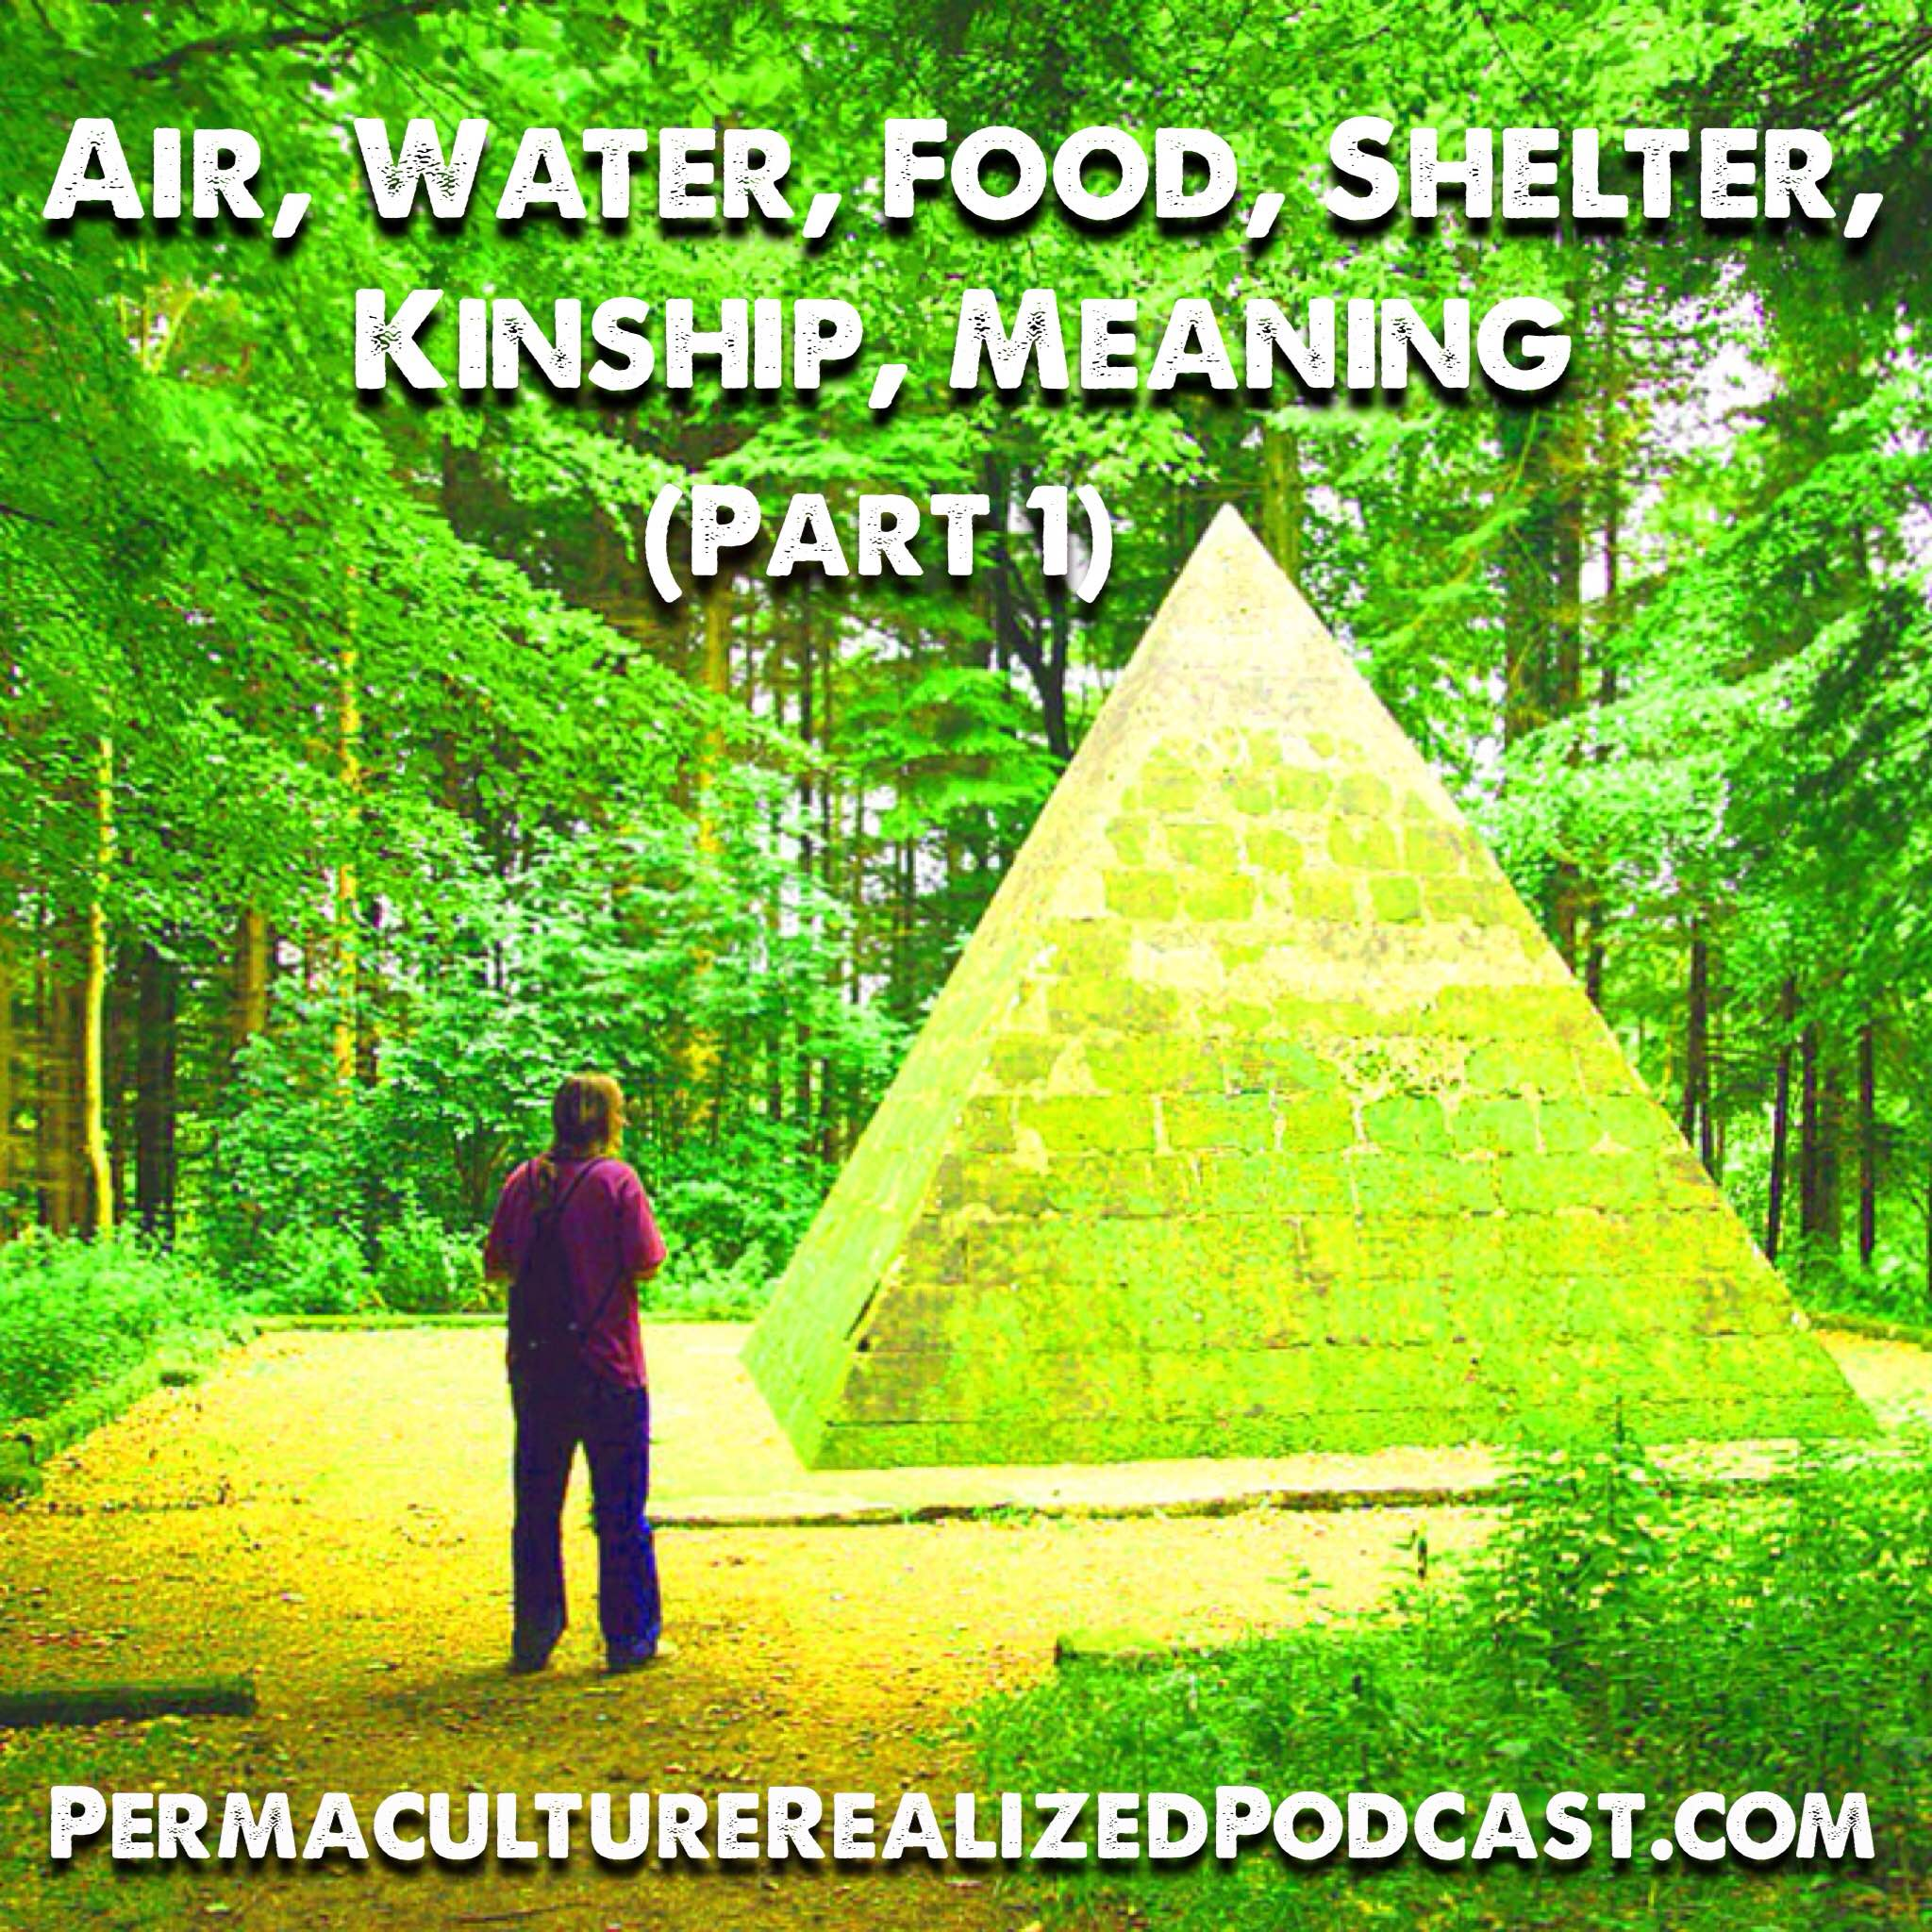 Permaculture Realized Podcast Episode 27, Air Water Food Shelter Kinship Meaning (Part 1)